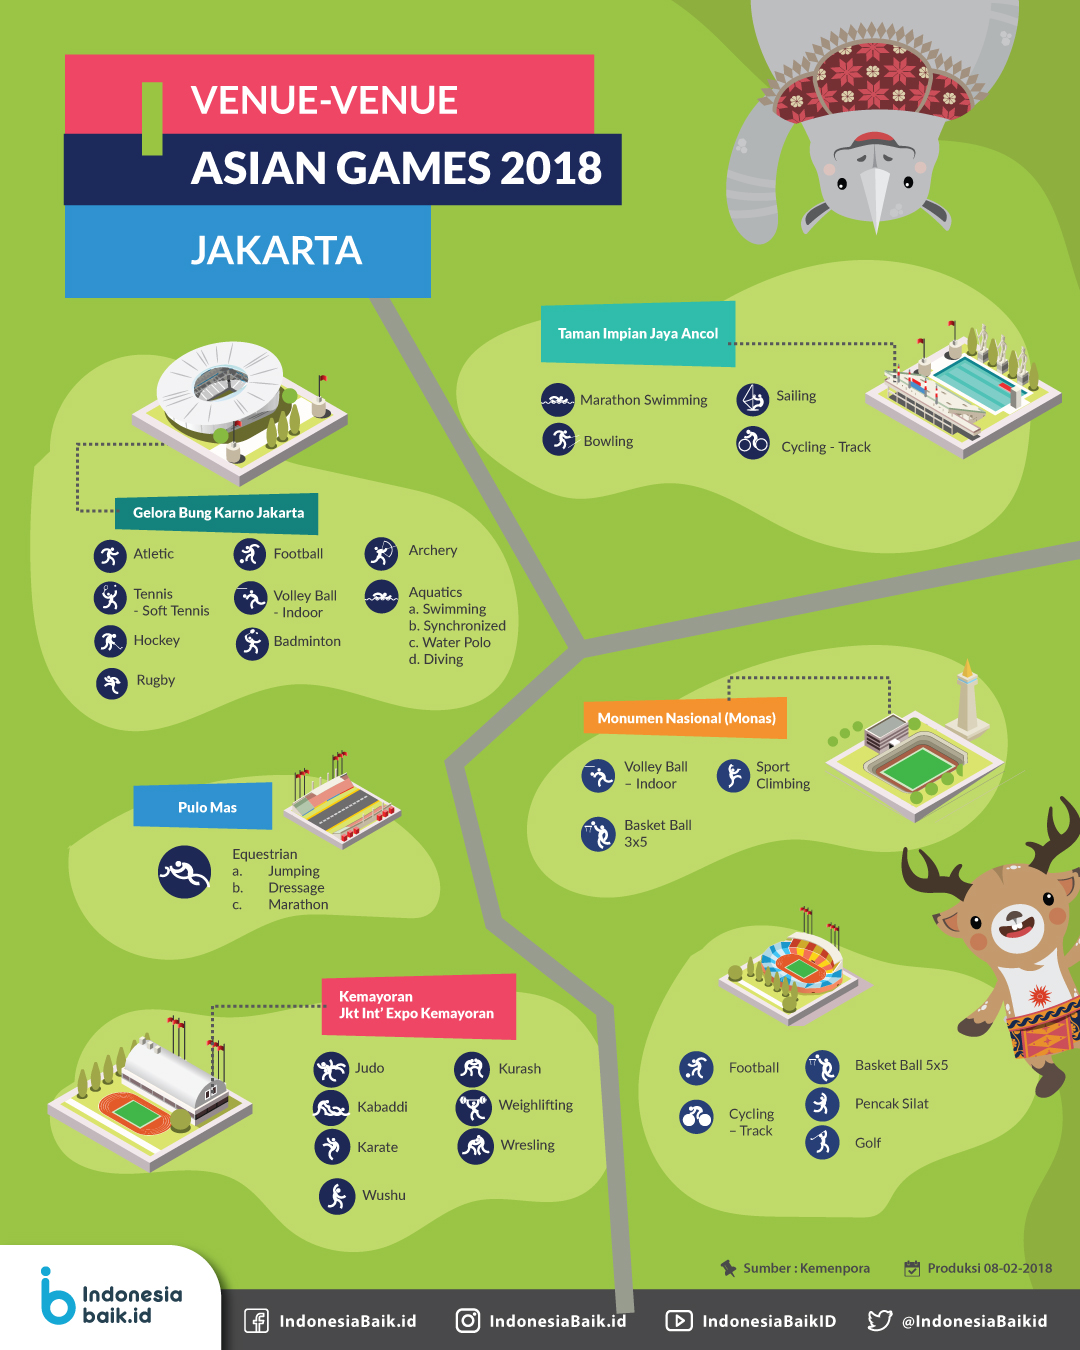 [ASIAN GAMES 2018] Venue-venue Asian Games 2018: Jakarta #20